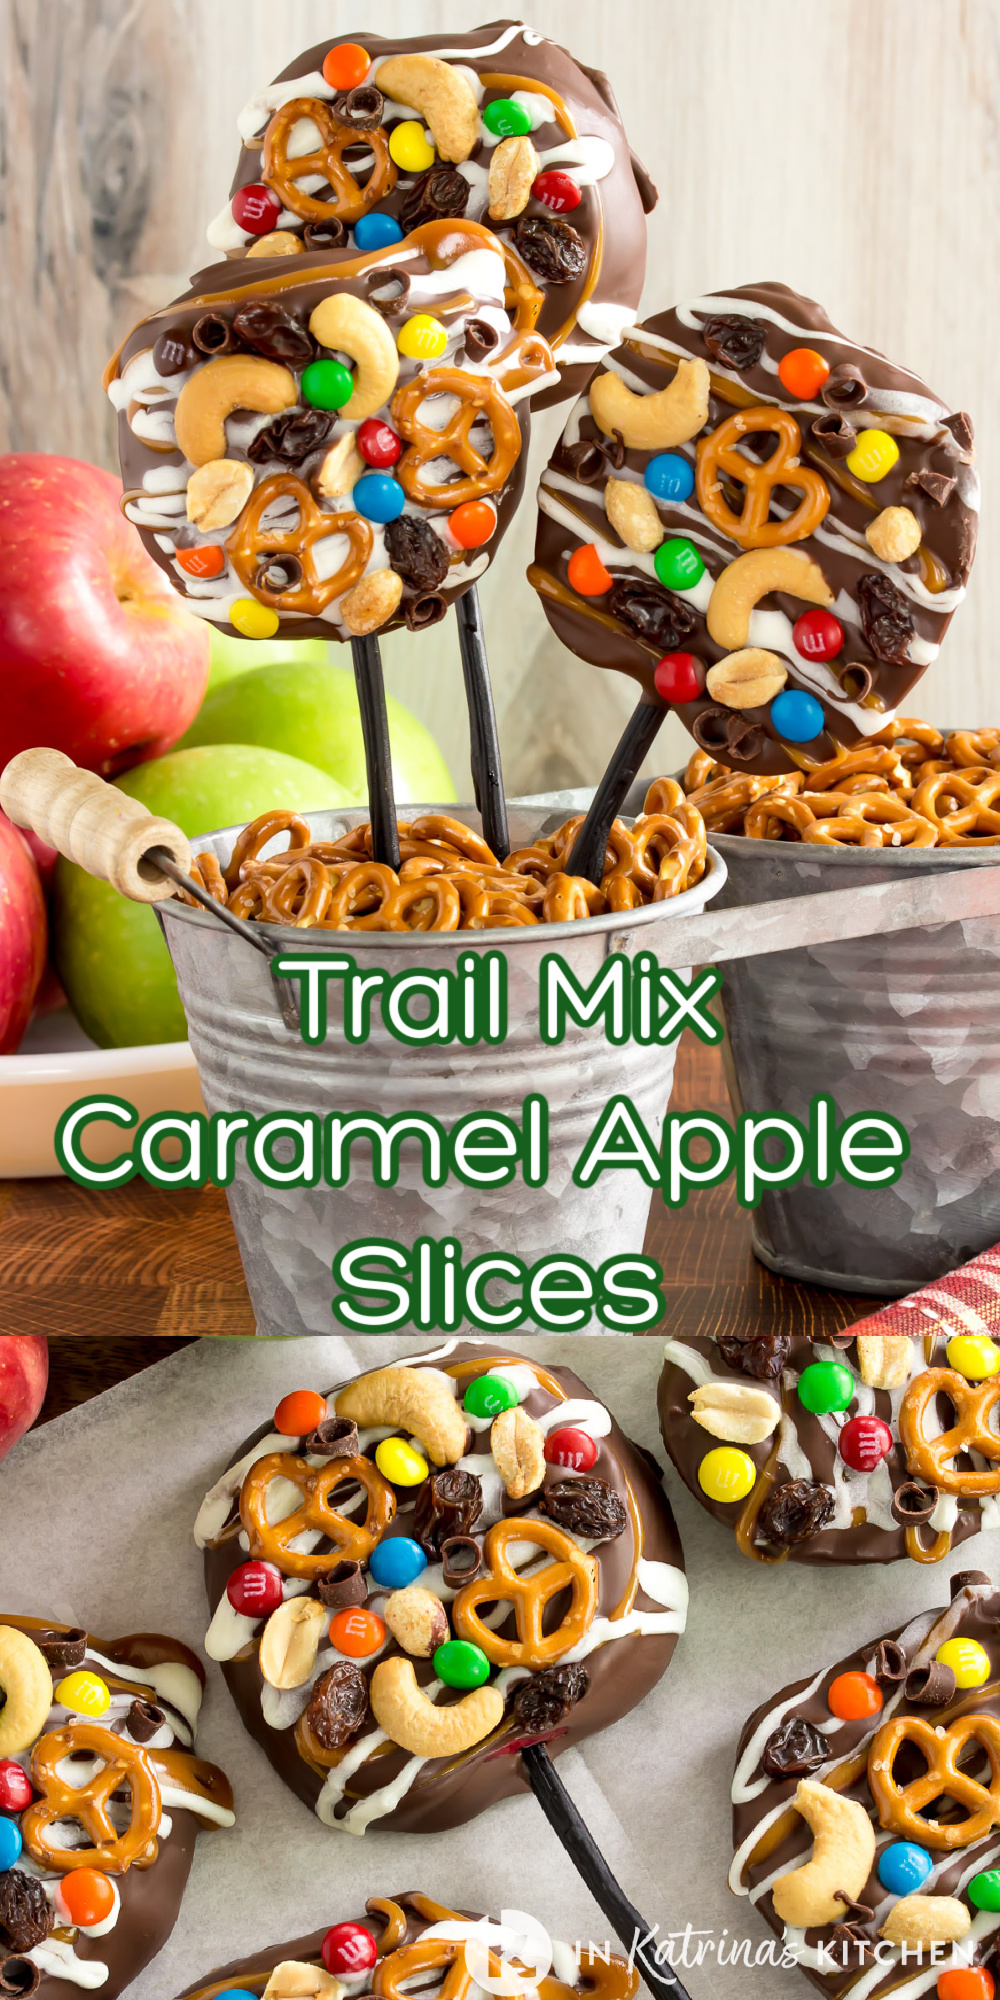 A must-make this Fall! These Trail Mix Caramel Apple Slices are a great way to serve up a traditional treat with a modern twist. PRINT and PIN the full recipe with helpful TIPS and TRICKS at In Katrina's Kitchen.